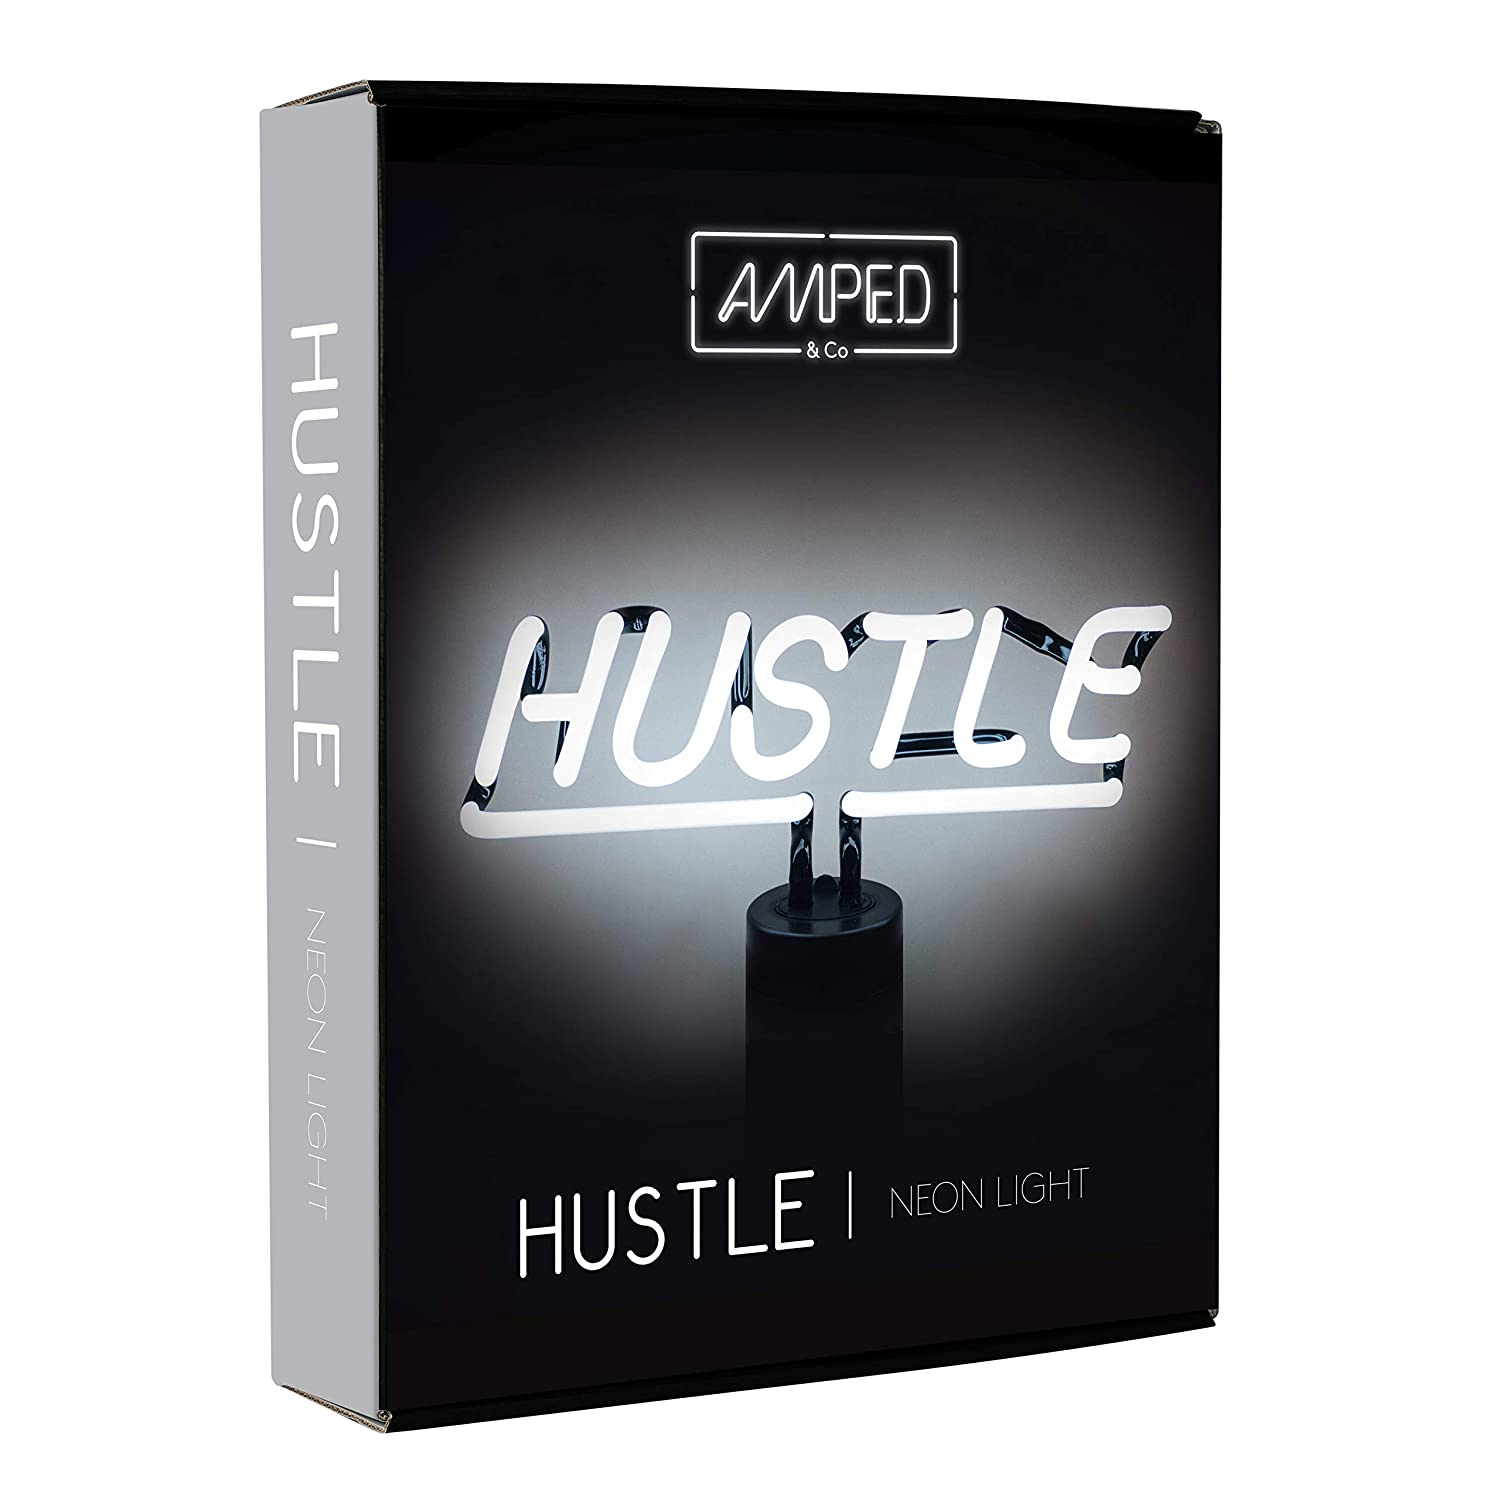 31ade0bf4e4eb Amazon.com: Amped & Co - Hustle Neon Sign, Desk Light with DC Adapter,  White Real Neon, 12x8: Home & Kitchen